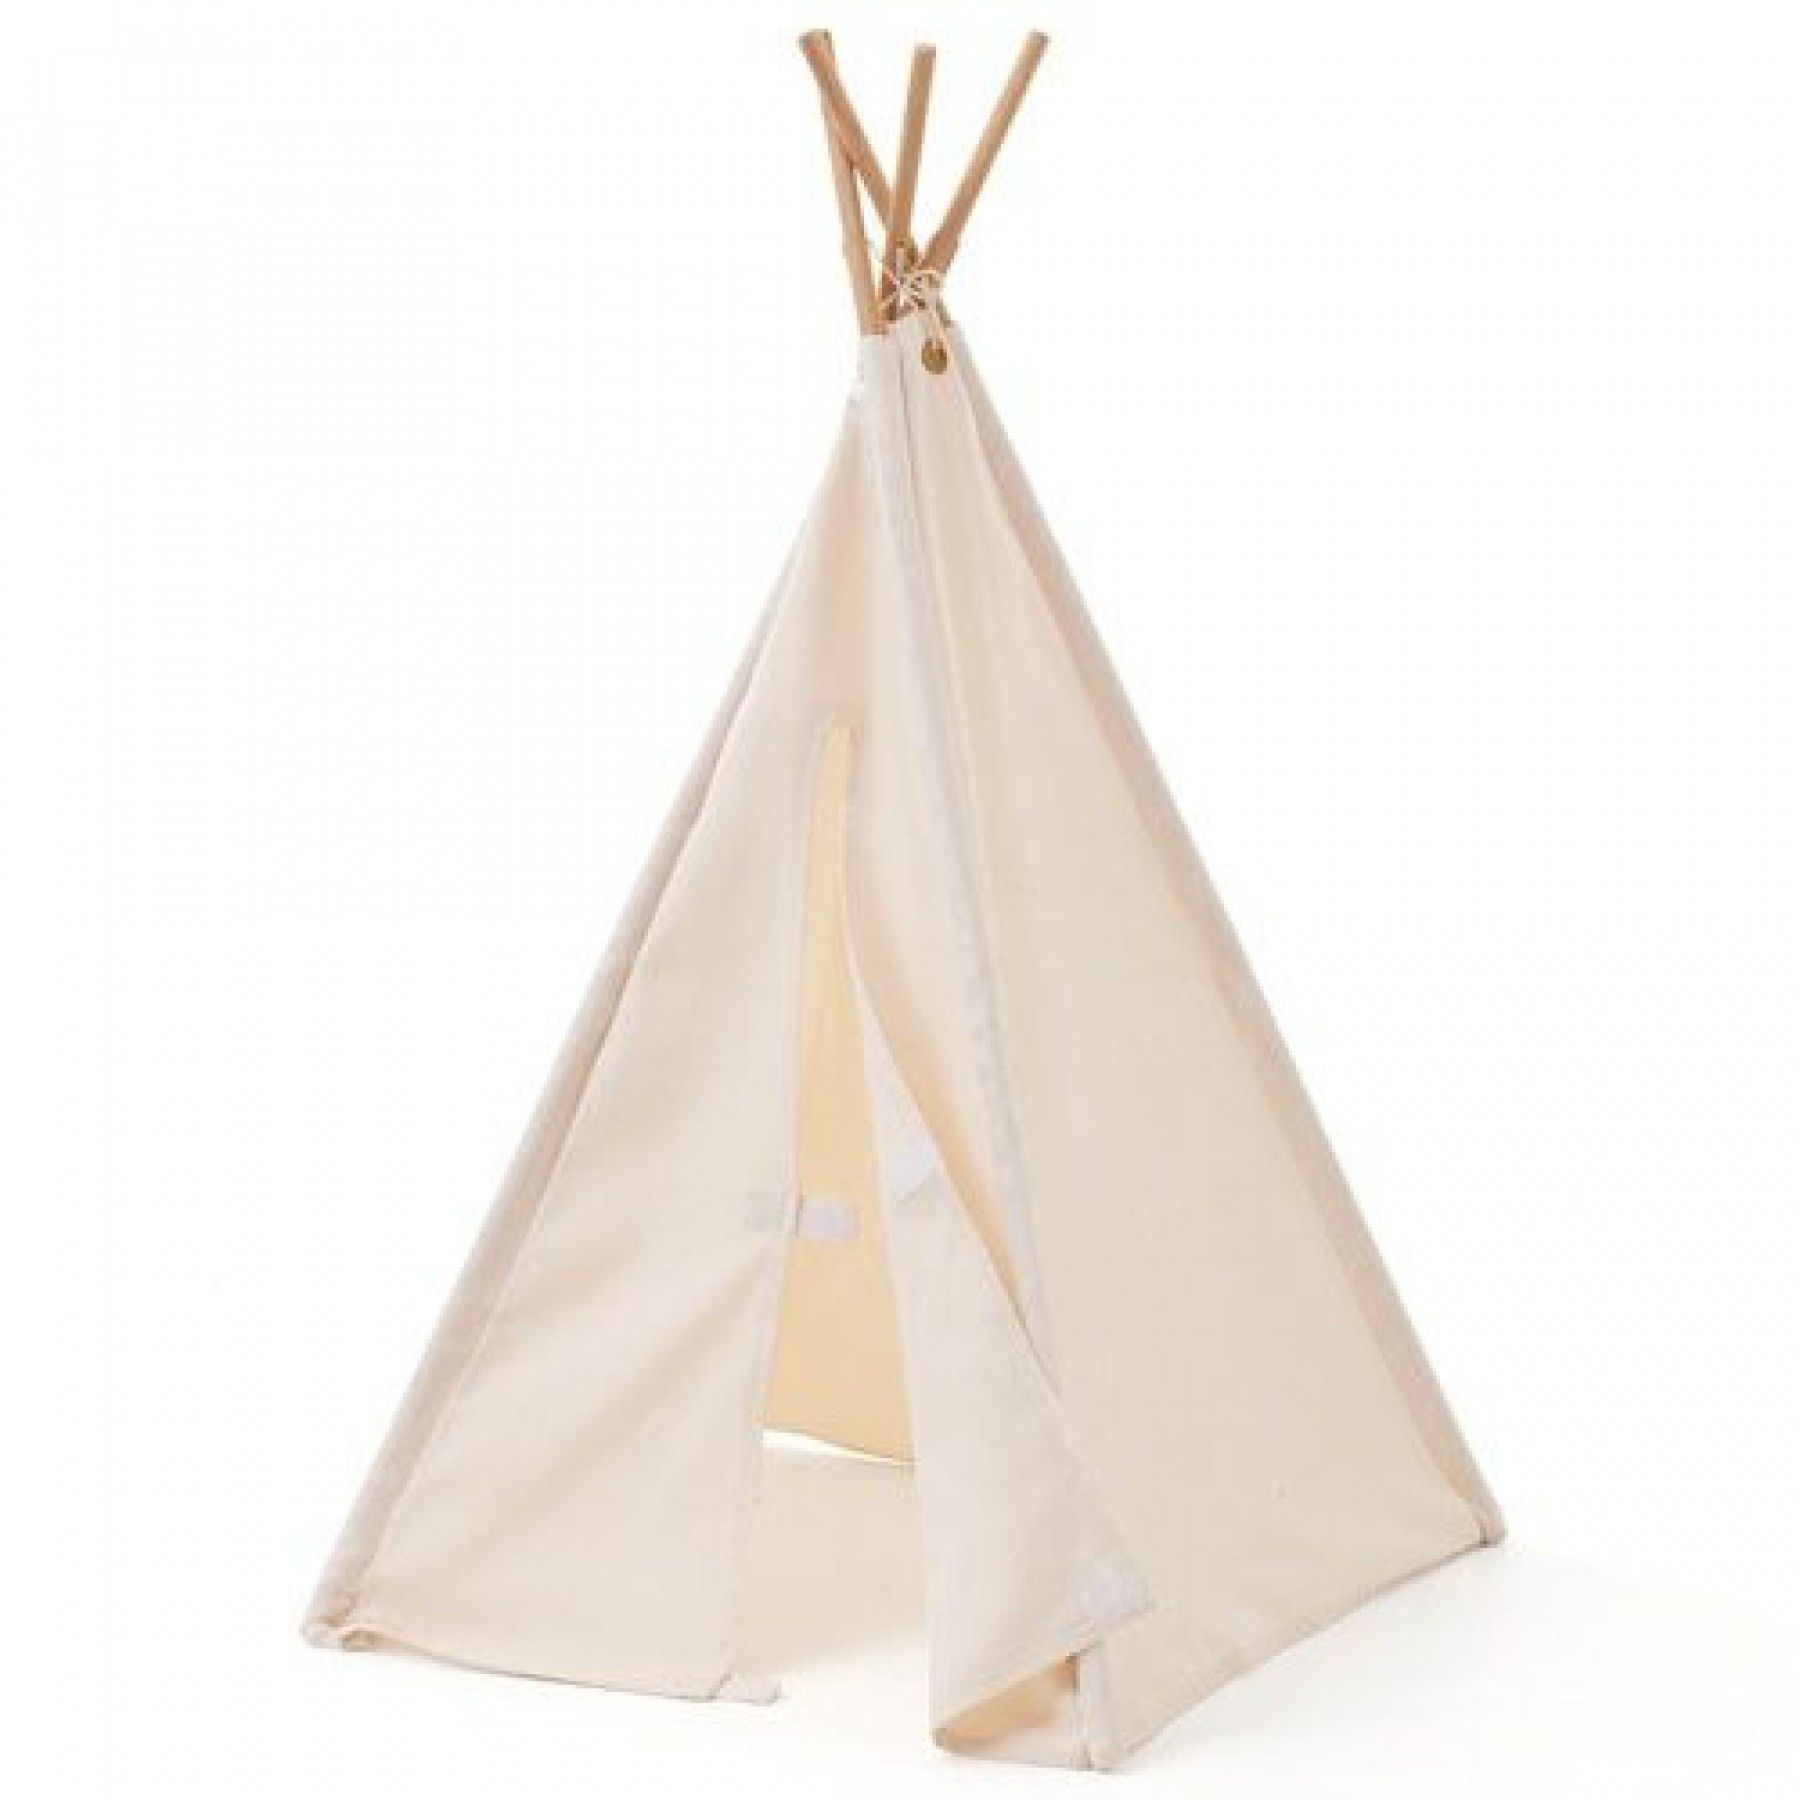 kids concept tipi wigwam mini - naturel 53x53x75 cm